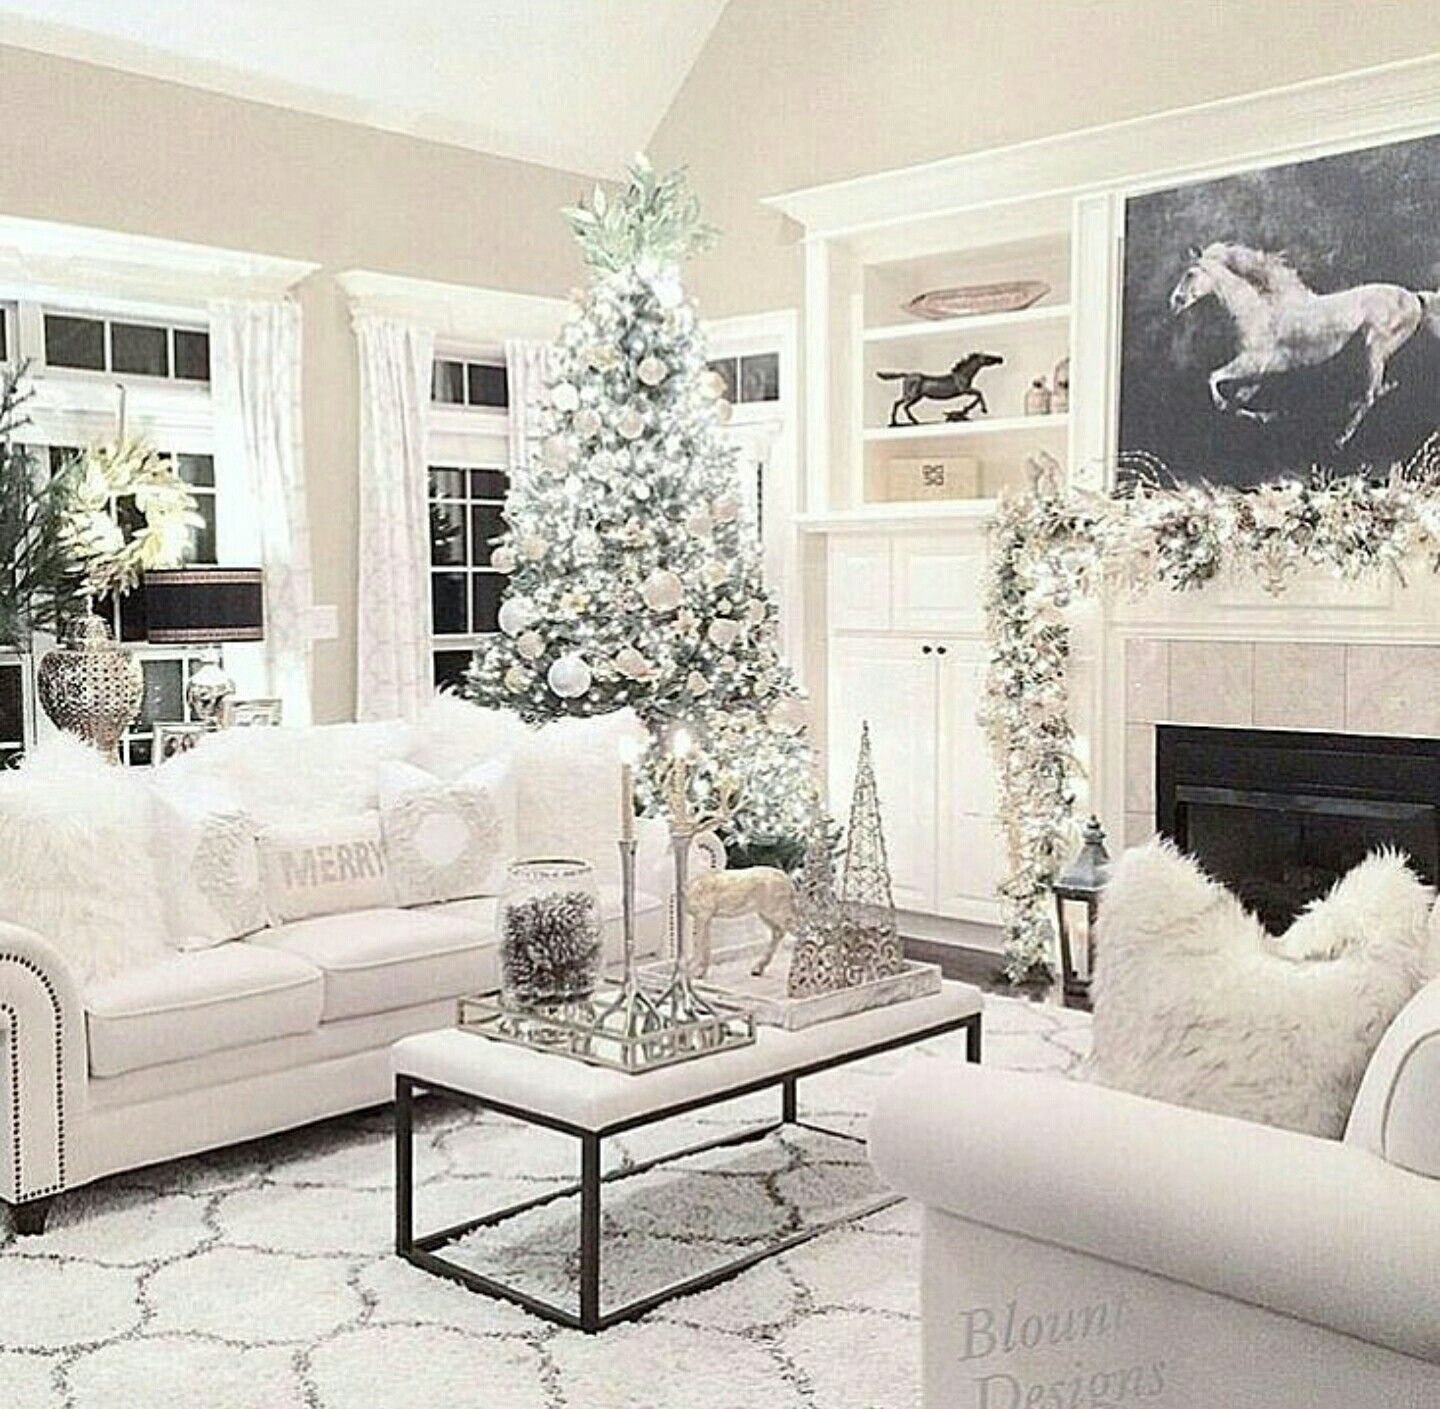 Pin von Karla Jones auf EXQUISITE LIVING ROOMS | Pinterest